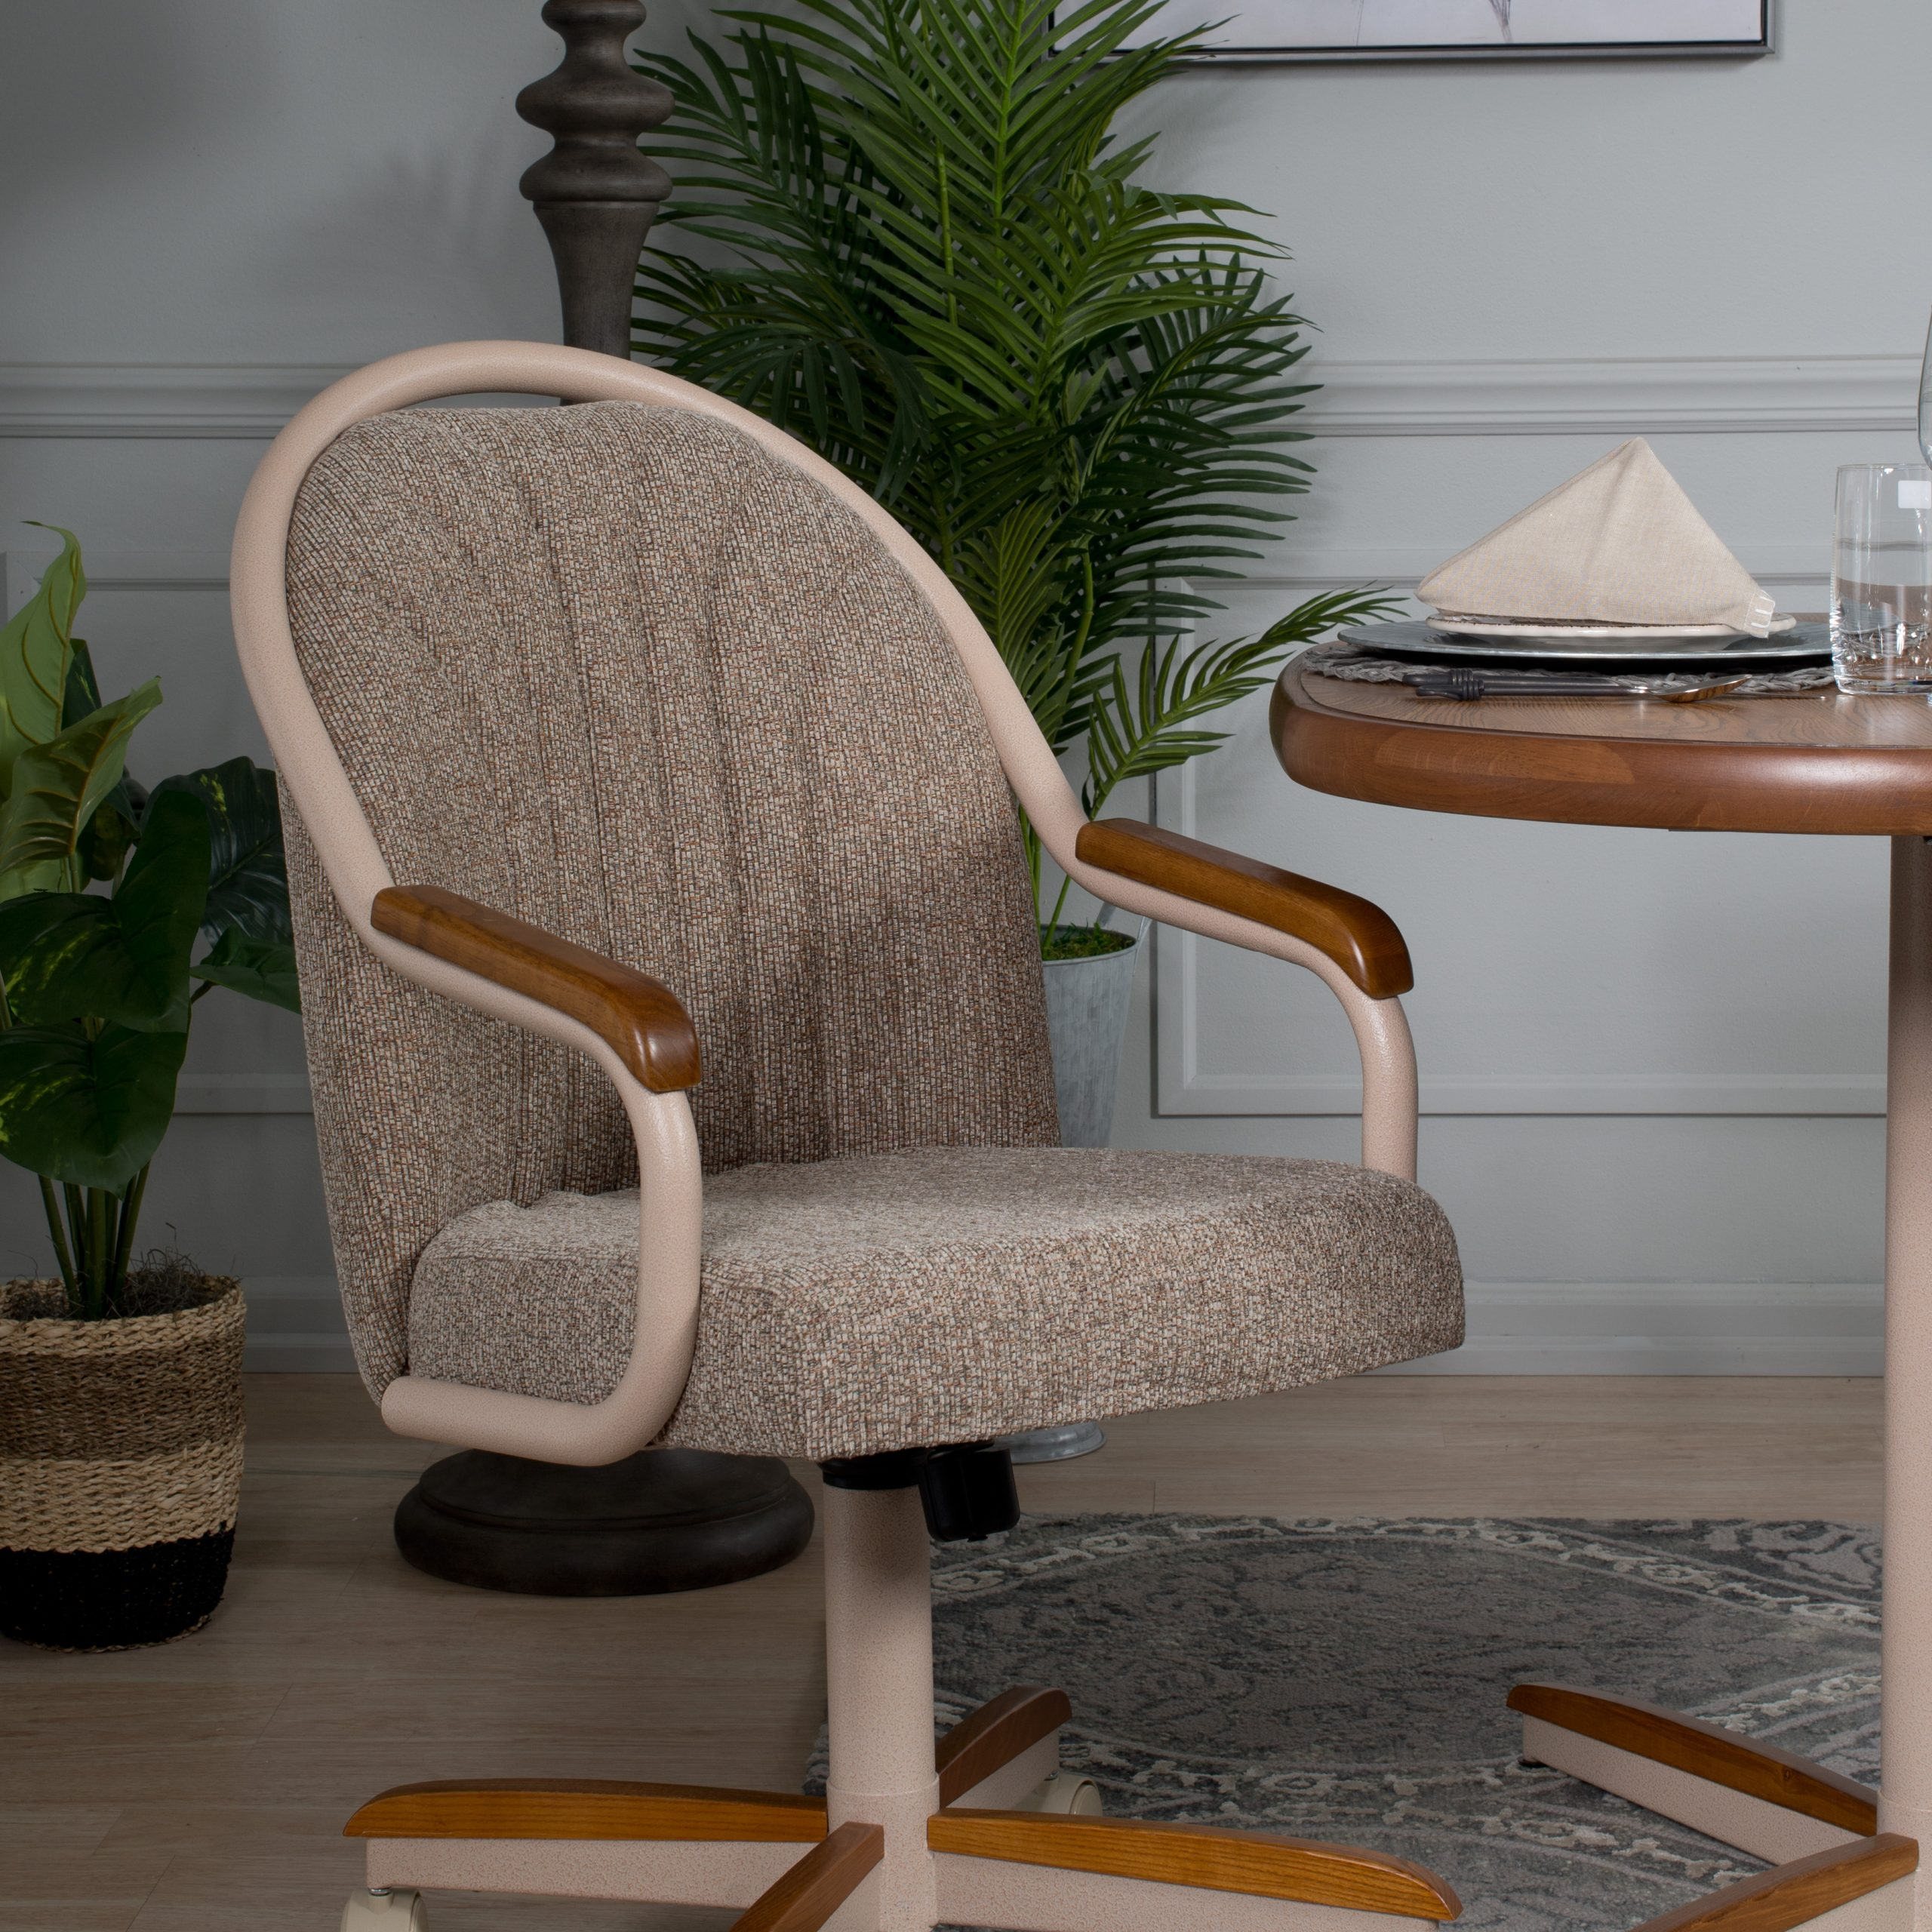 Caster Chair Tilt Rolling And Swivel Casual Dining Chair Intended For Casual Sofas And Chairs (View 14 of 15)